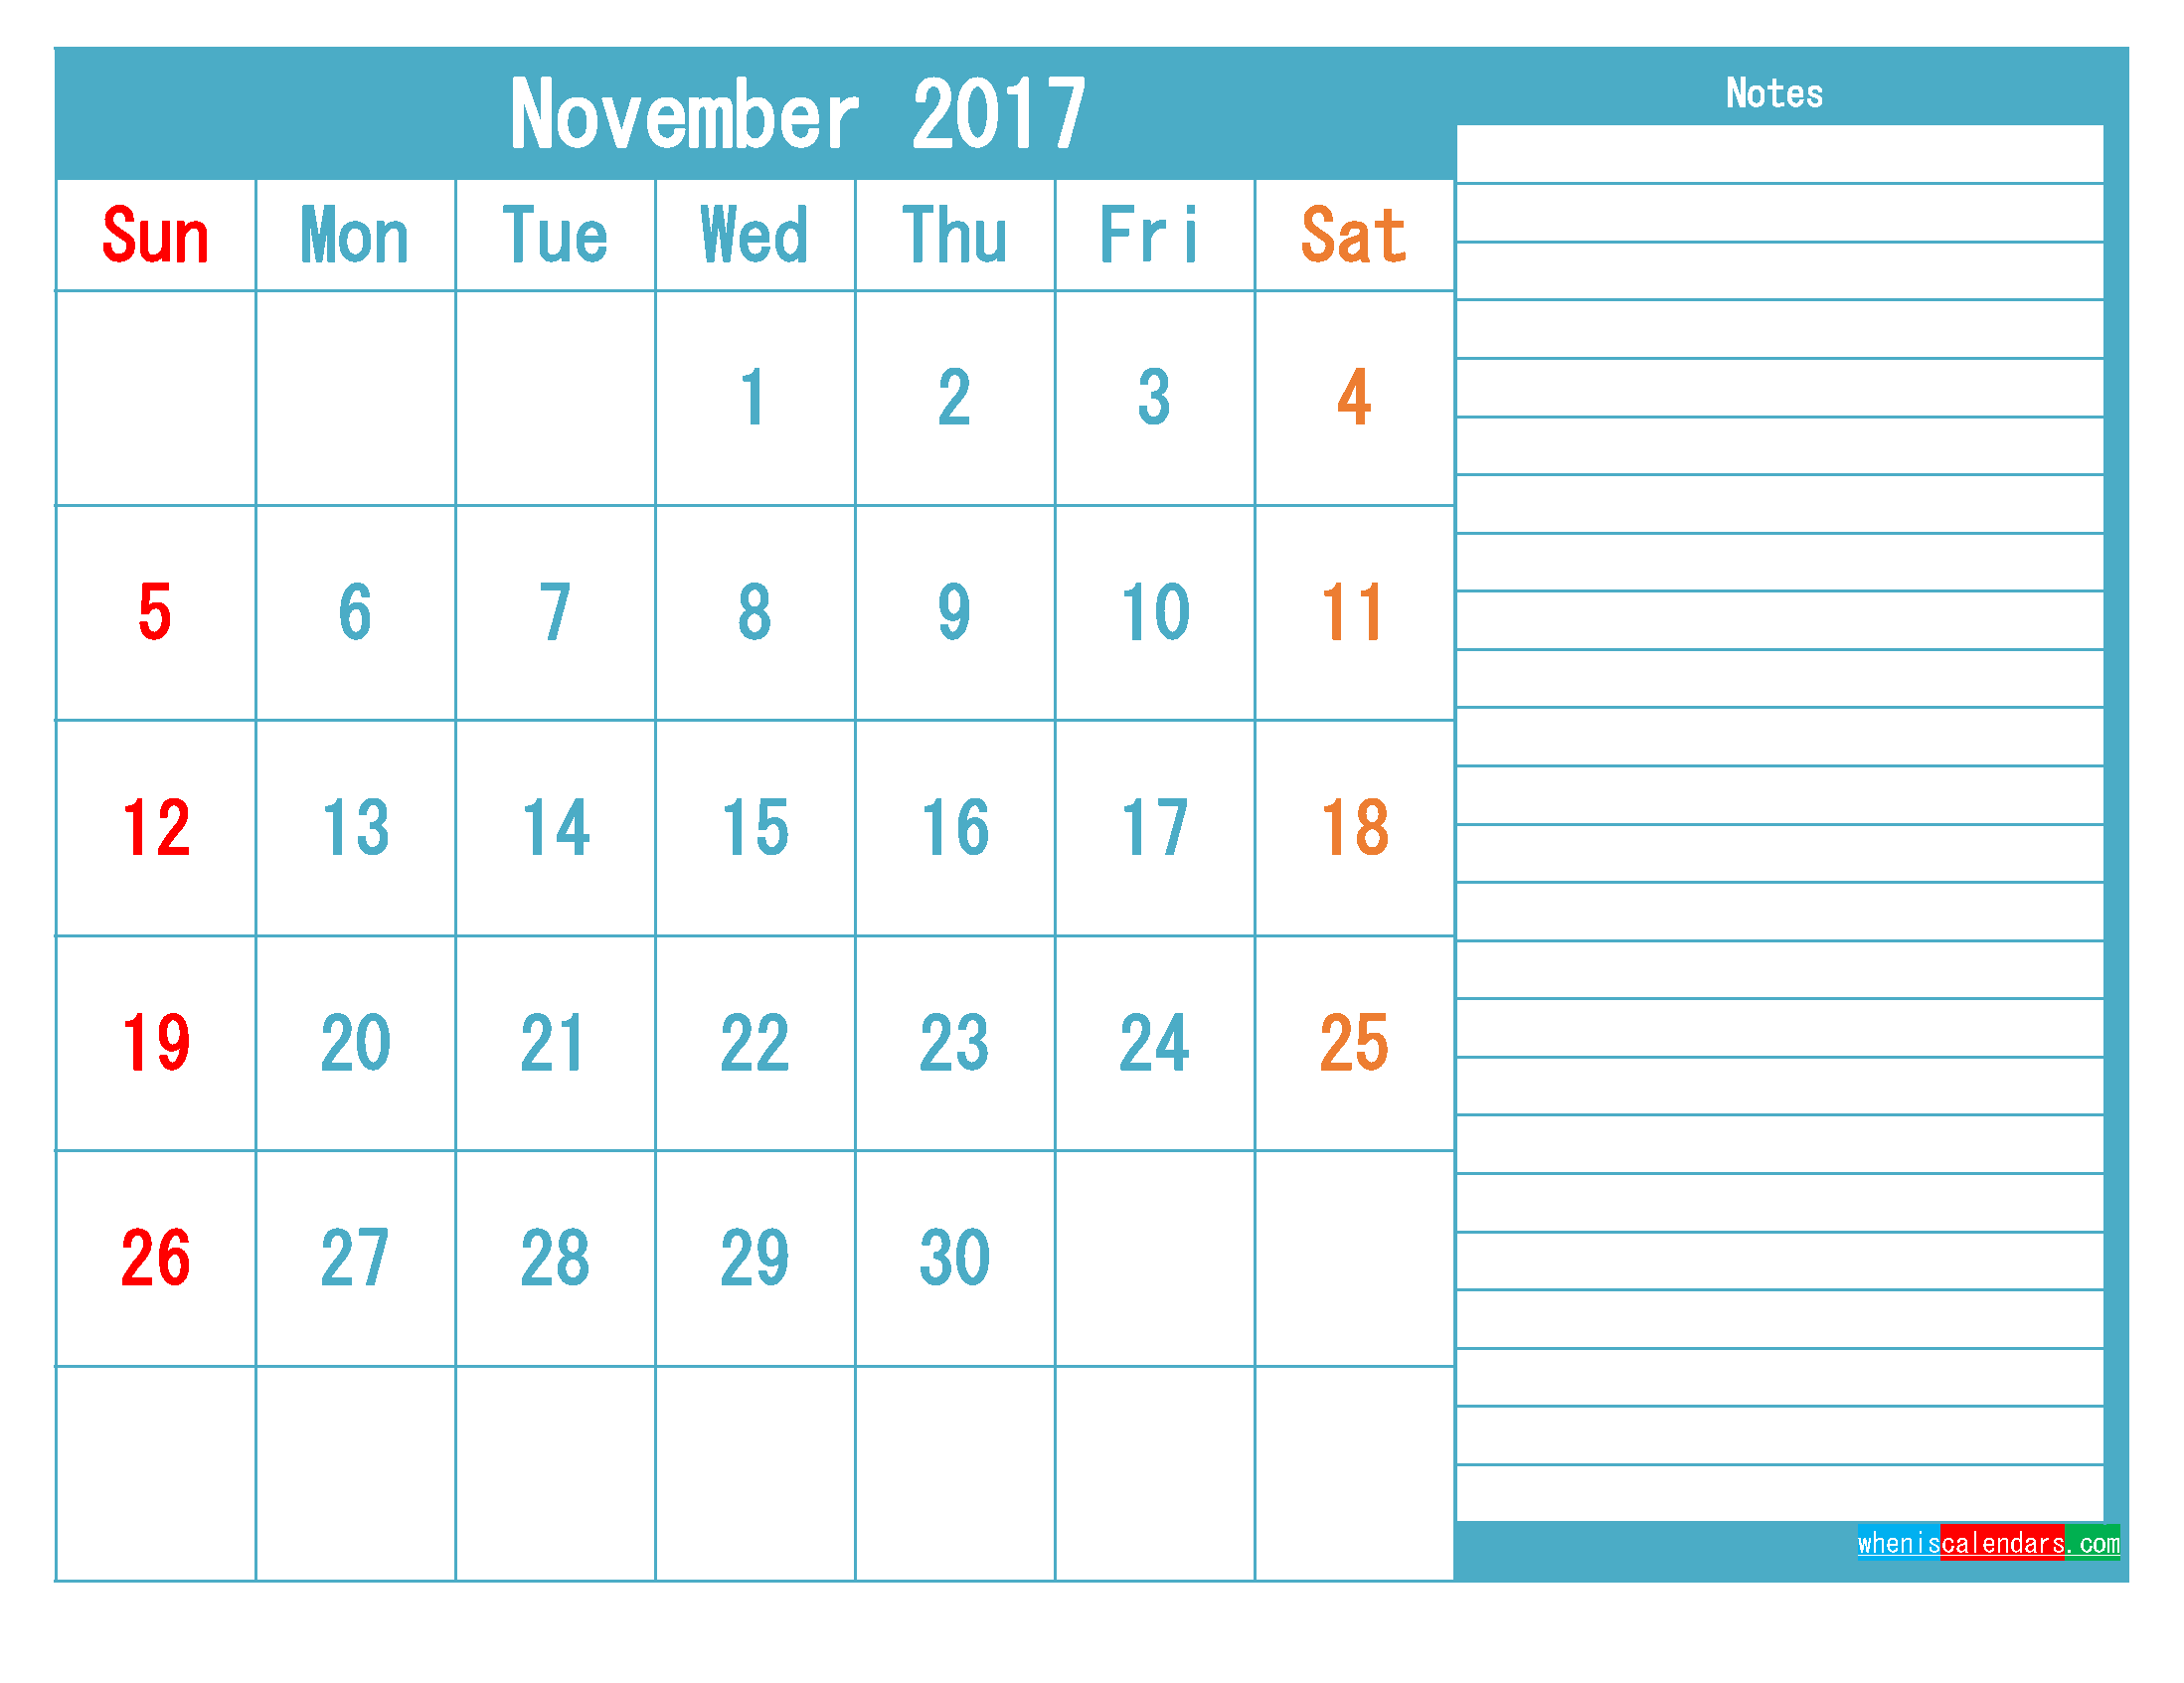 November 2017 Printable Calendar Templates PDF and Image